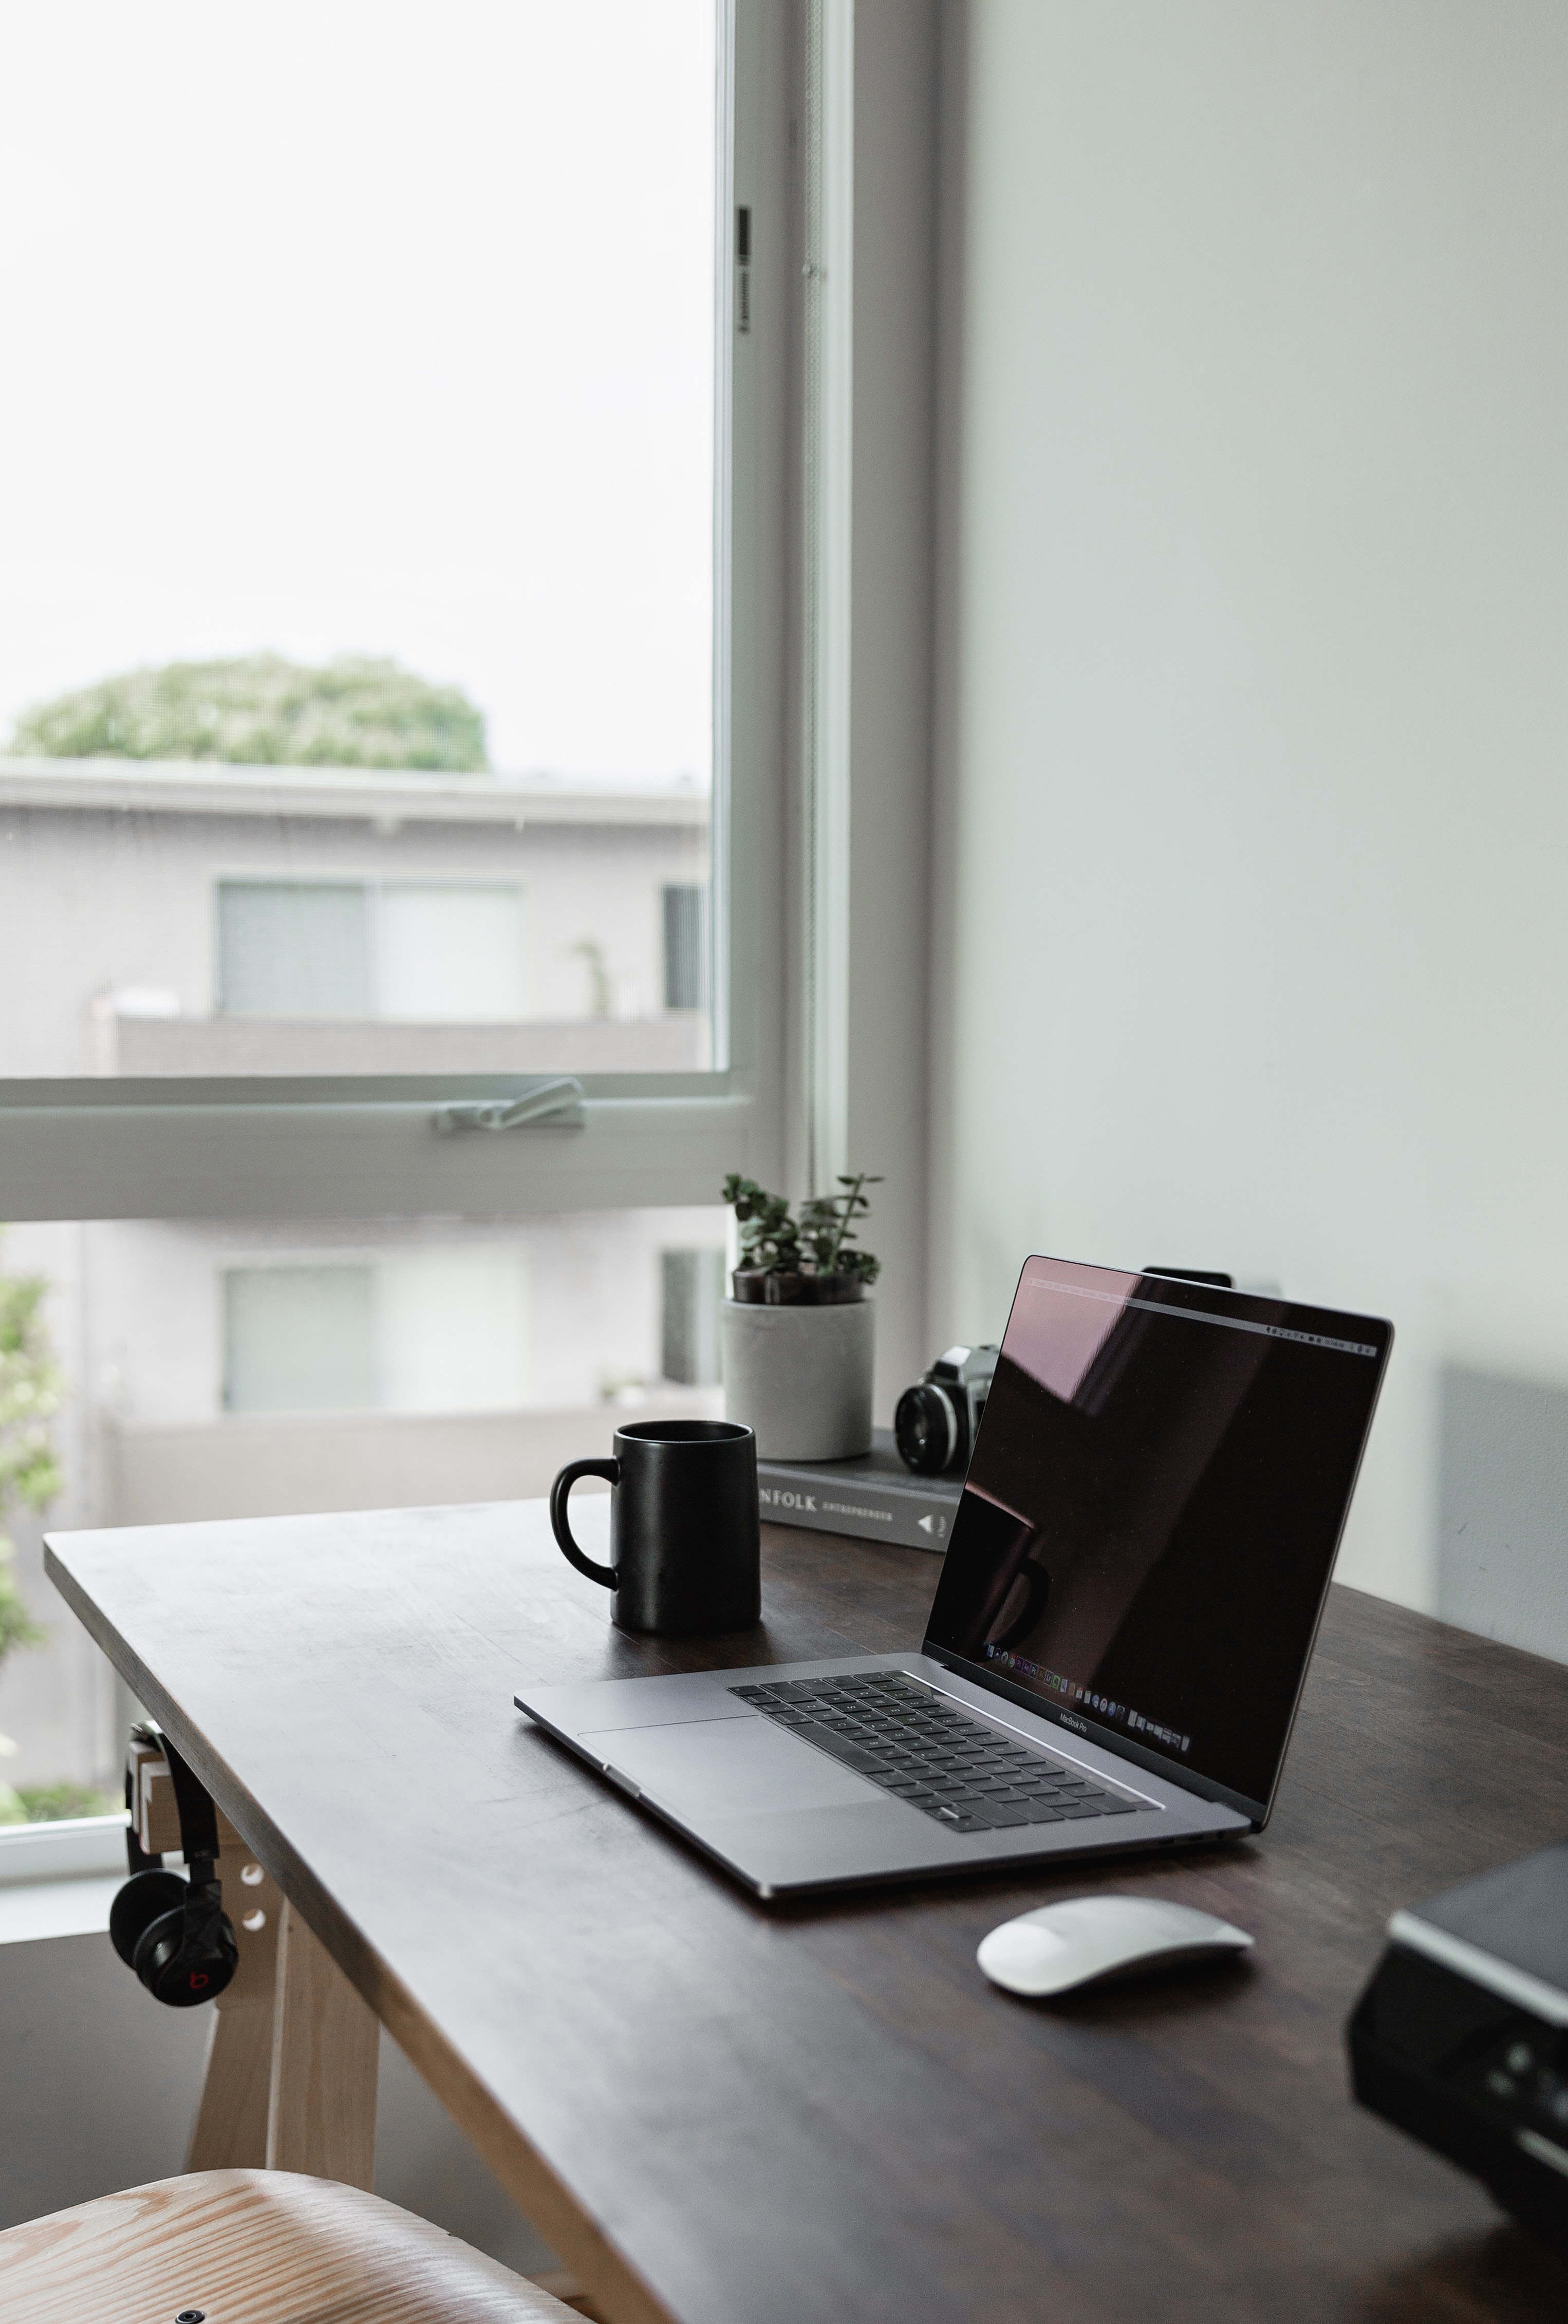 Home office technology Multiple Home Office Pictures More Time For You 500 Home Office Pictures hd Download Free Images On Unsplash